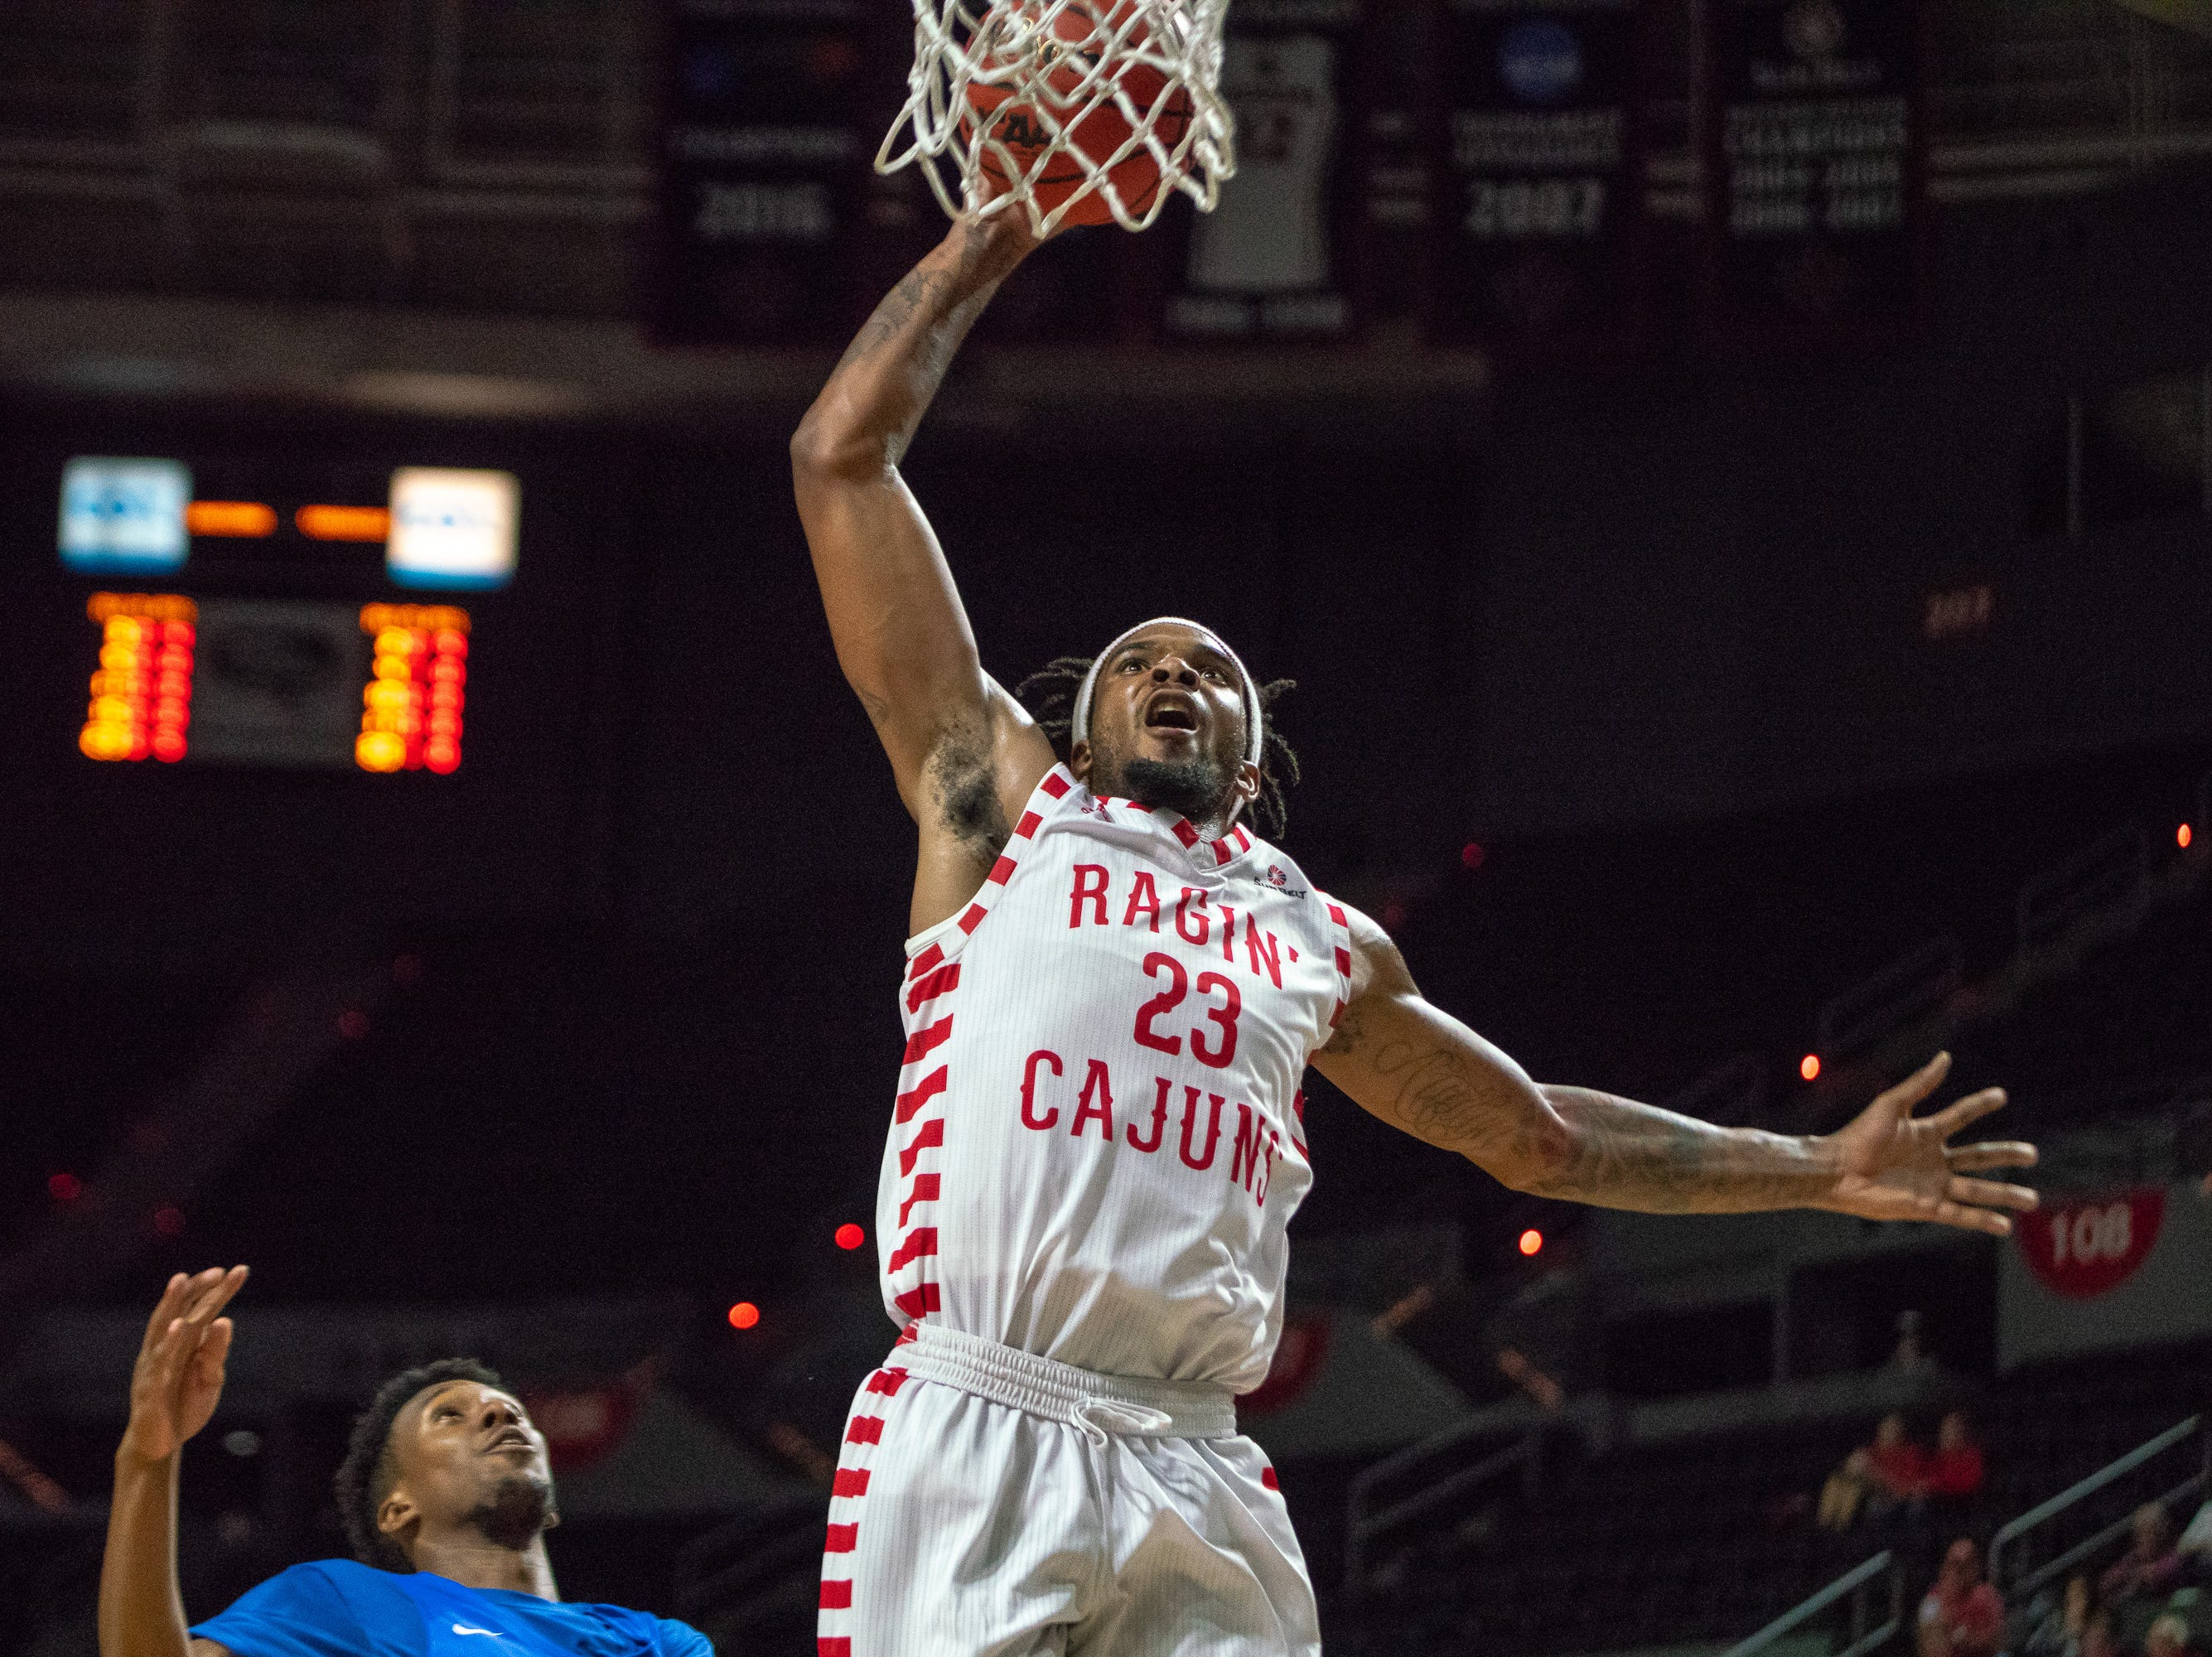 UL's Jakeenan Gant leaps up for a dunk as the Ragin' Cajuns take on the University of the Virgin Islands Buccaneers at the Cajundome on Nov. 6, 2018.